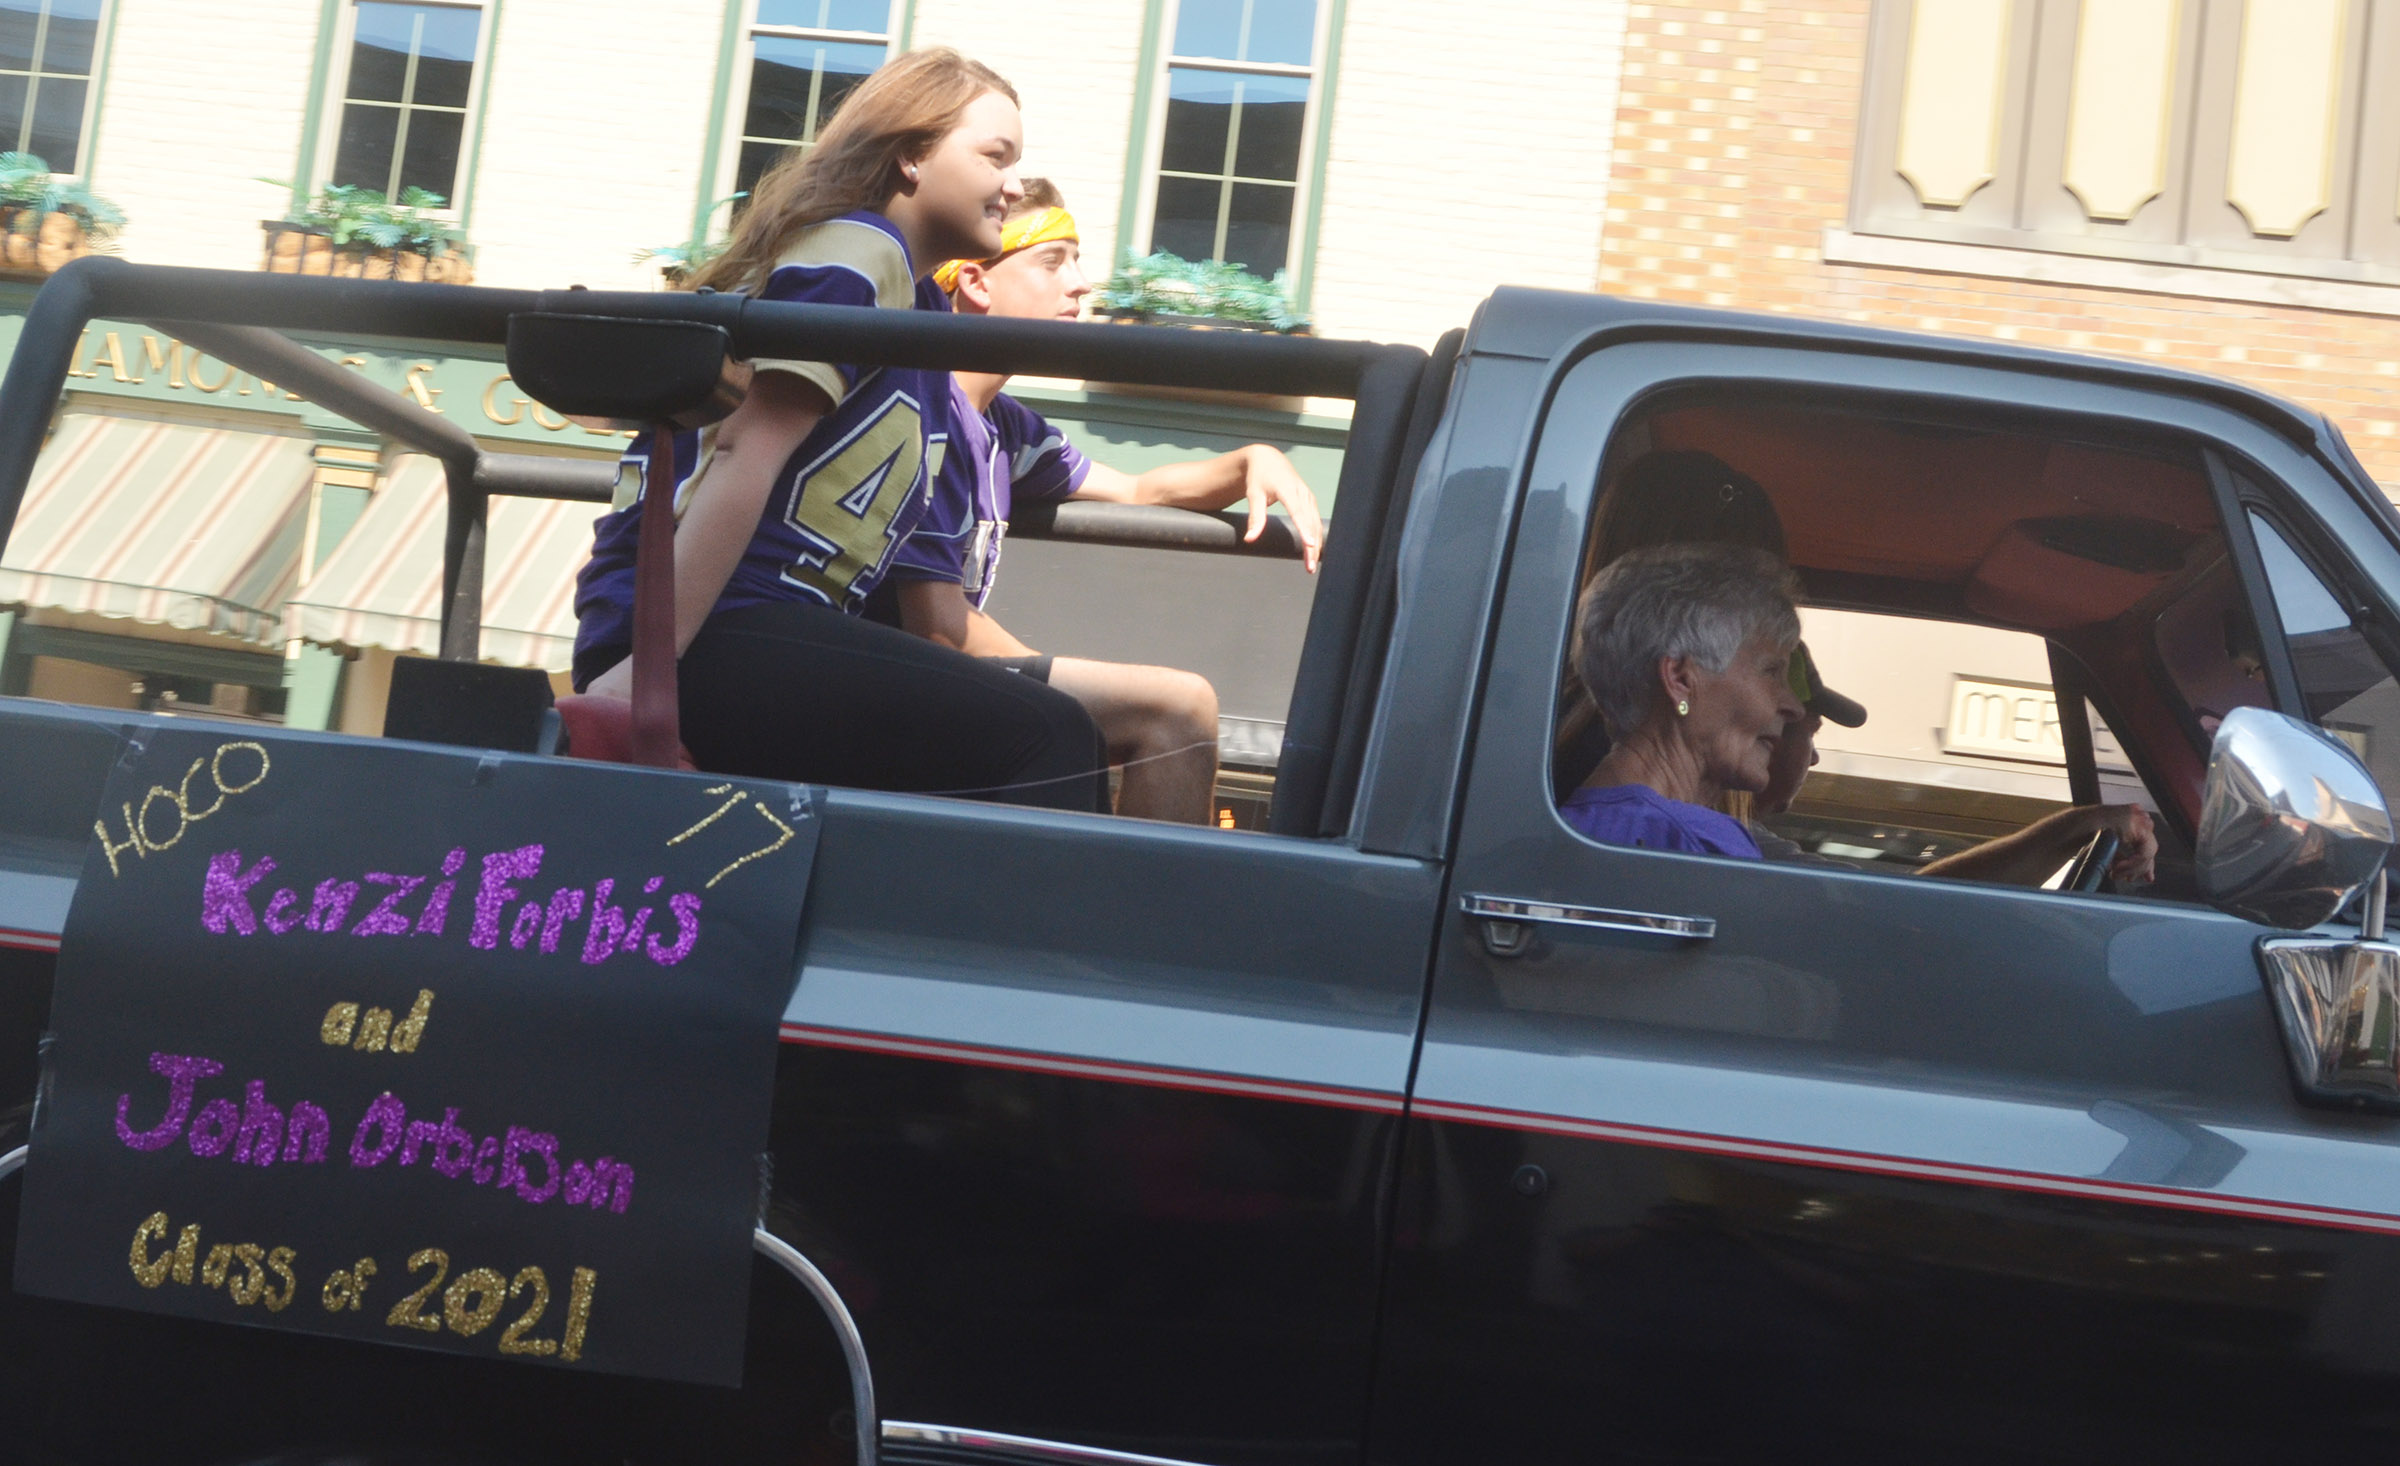 CHS freshmen homecoming candidates Kenzi Forbis and John Orberson ride in the parade.